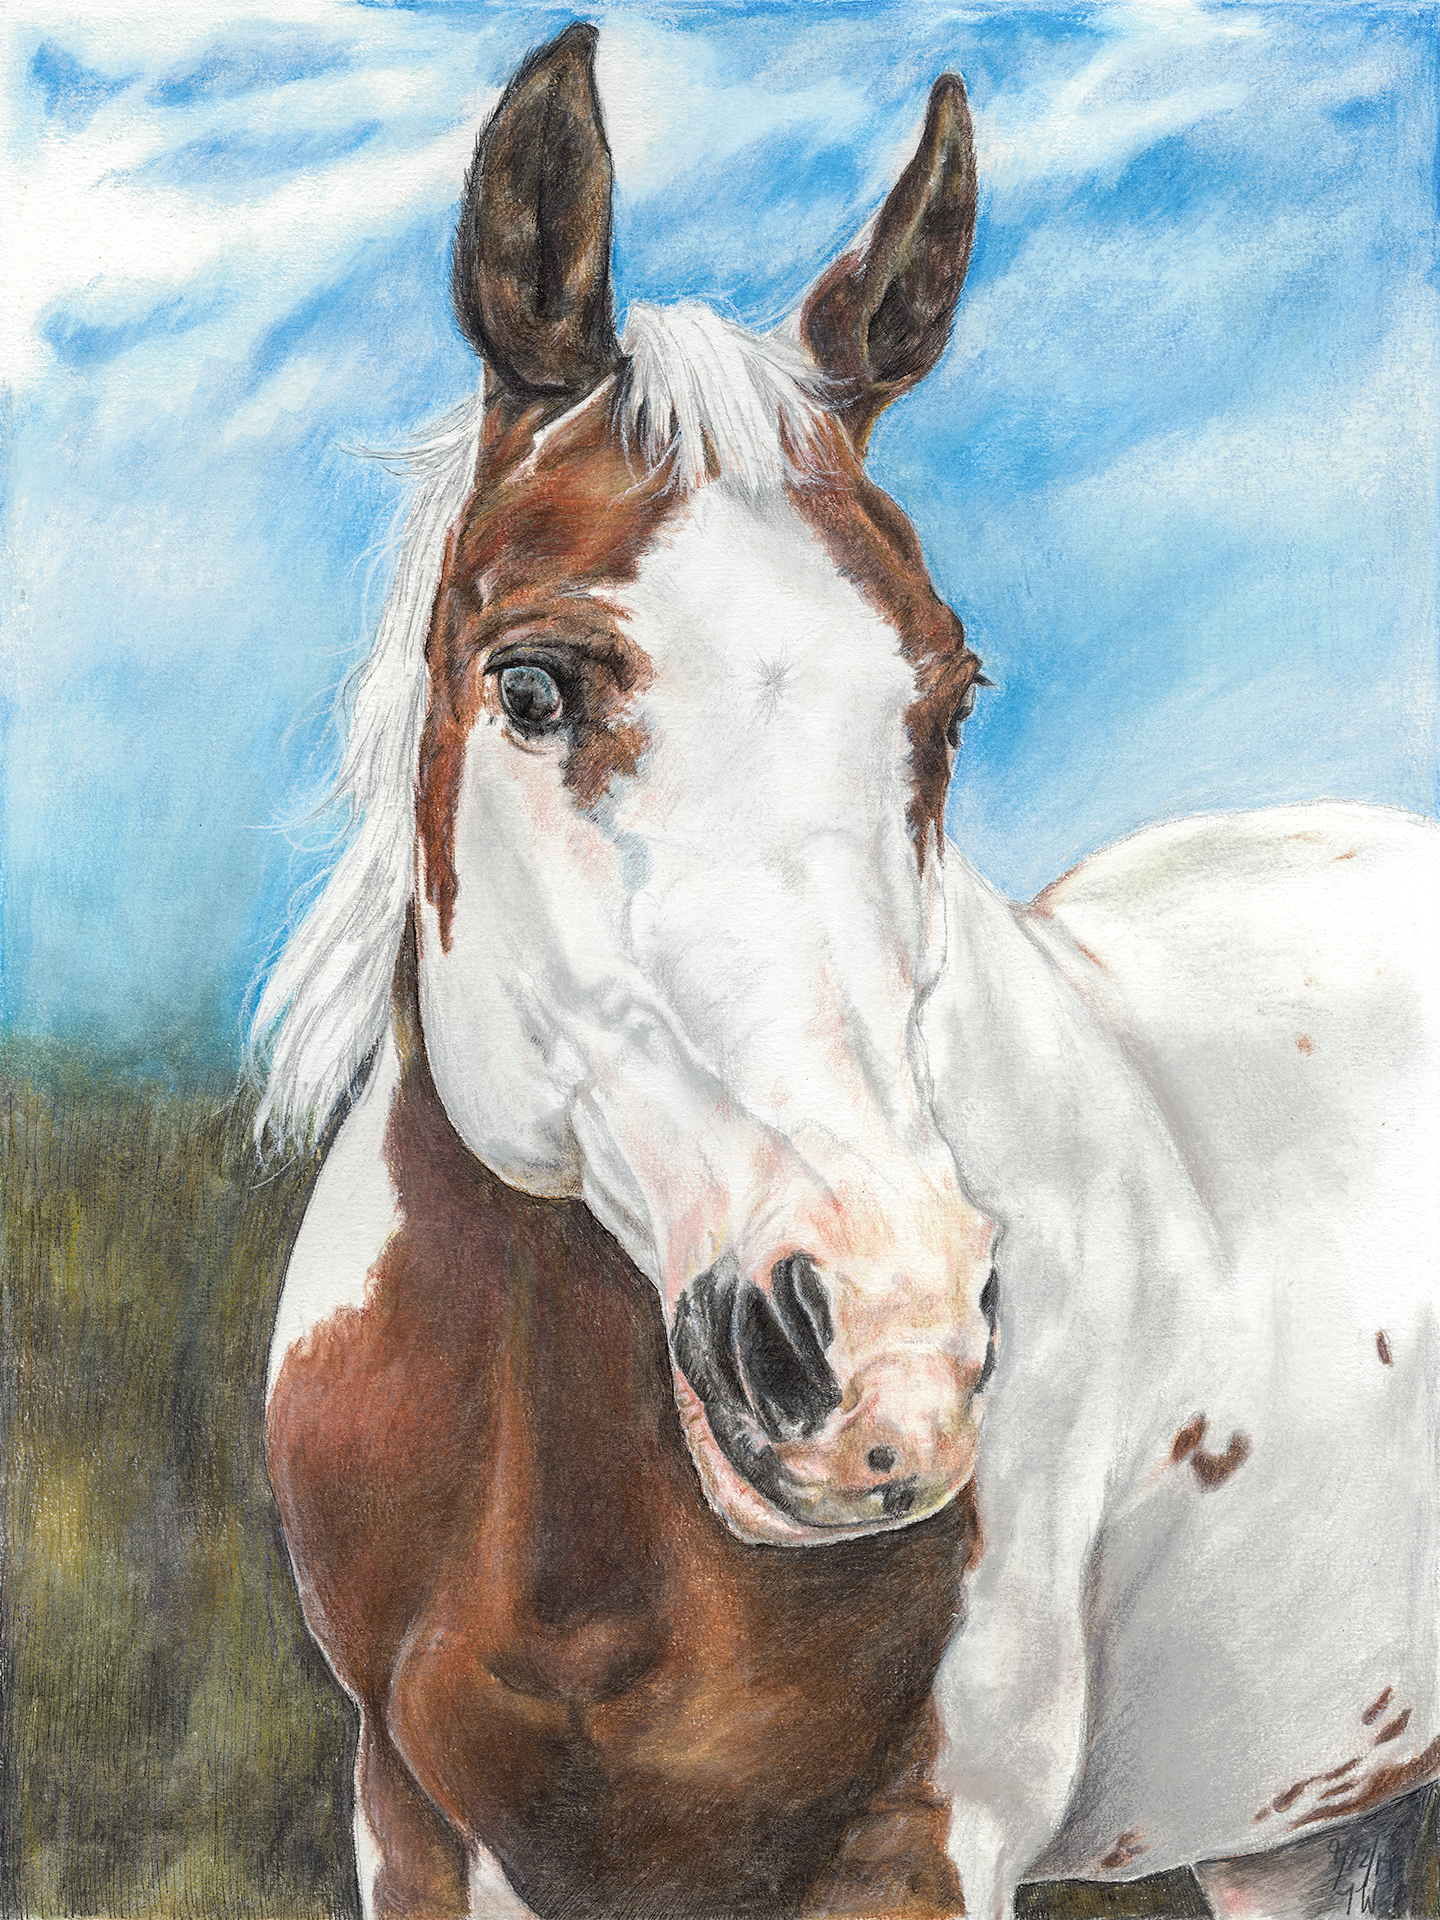 Brown and White Horse.jpg